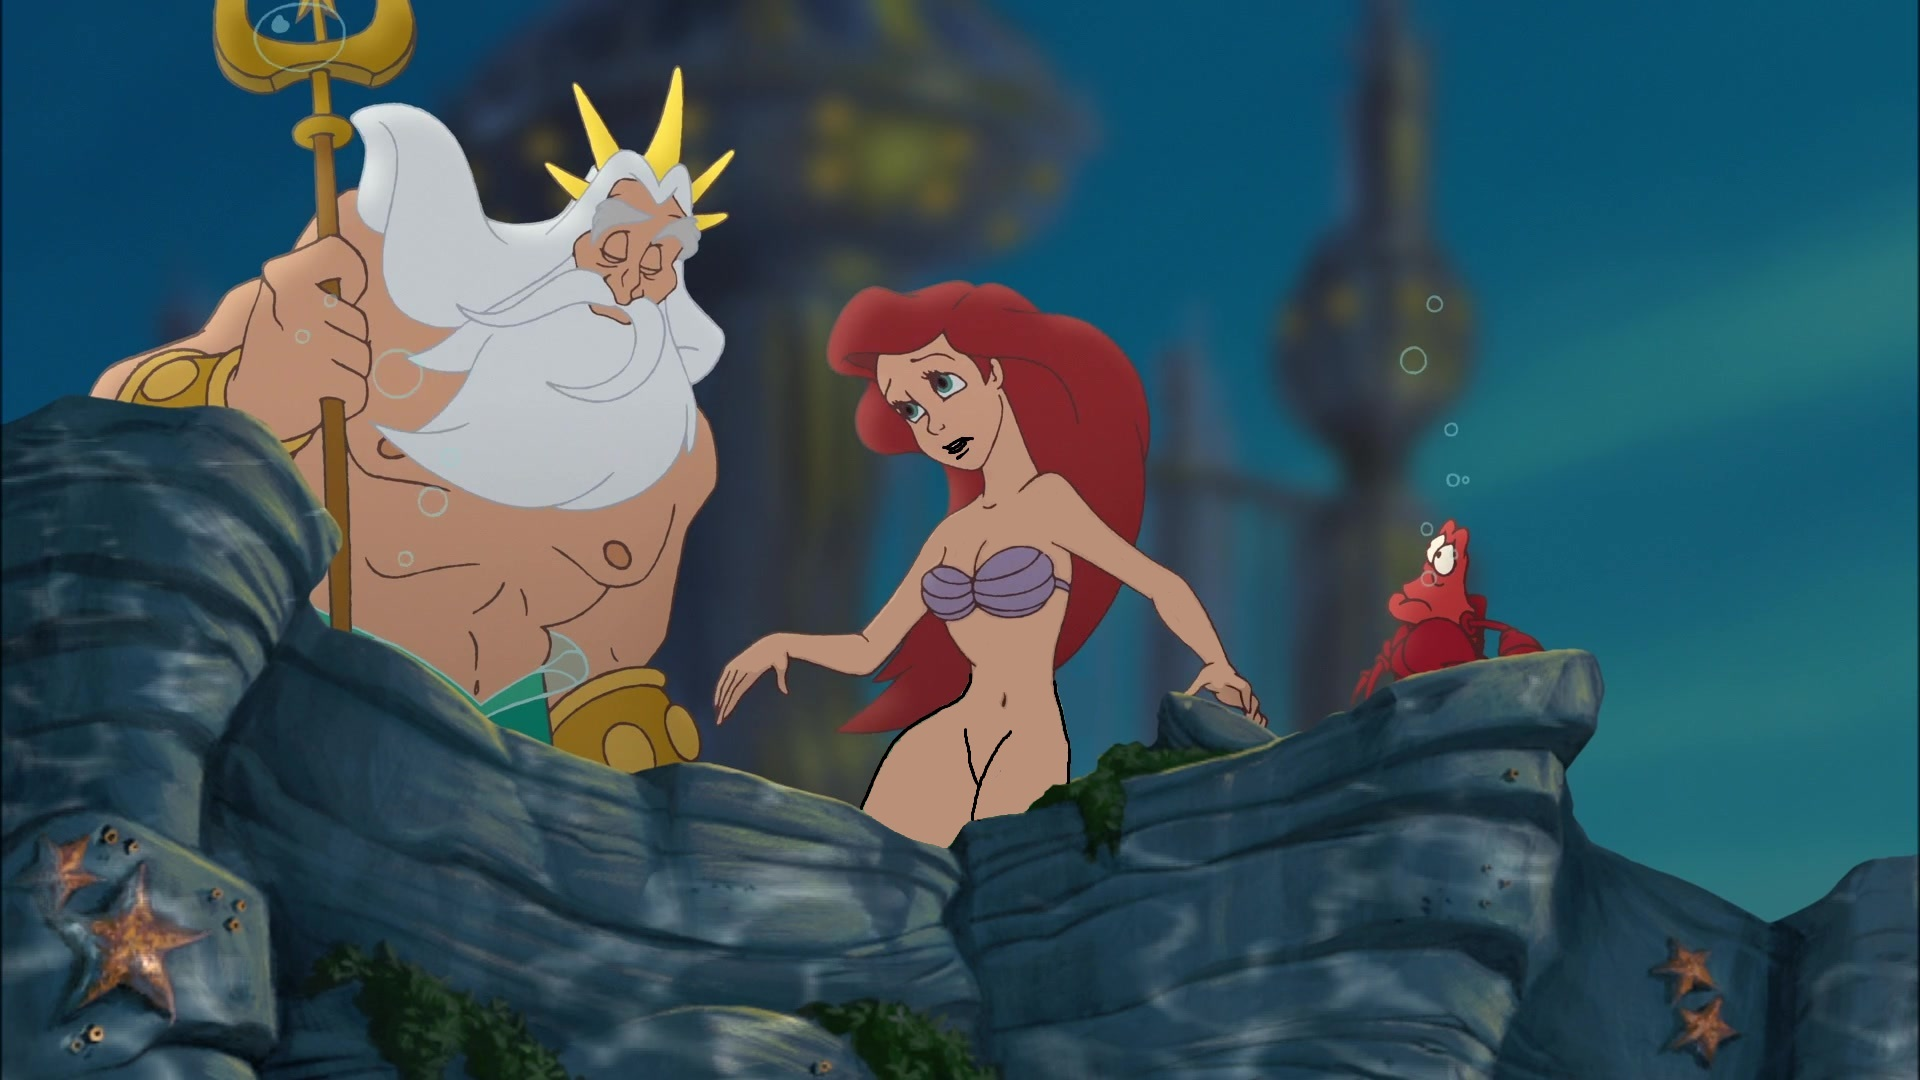 Little mermaid sex scene naked — photo 9